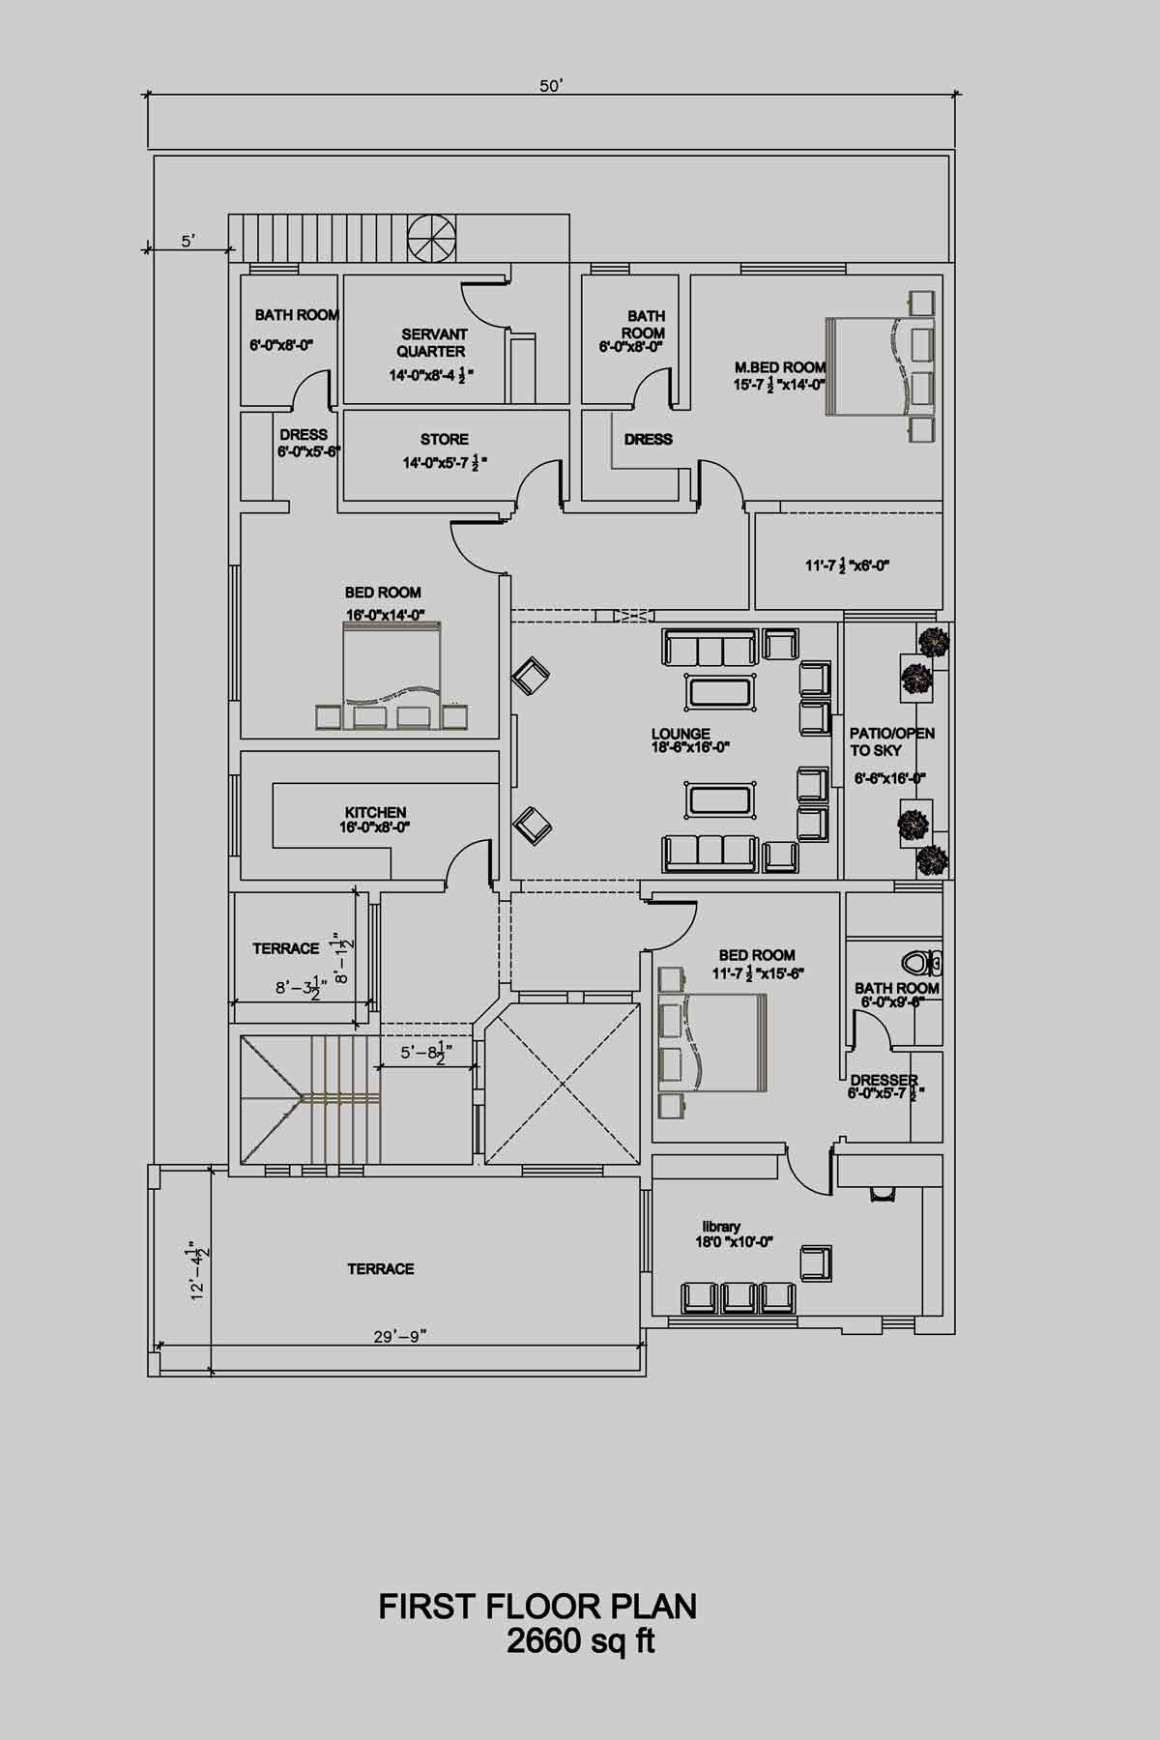 House floor plan construction cost story house and for Floor plan cost